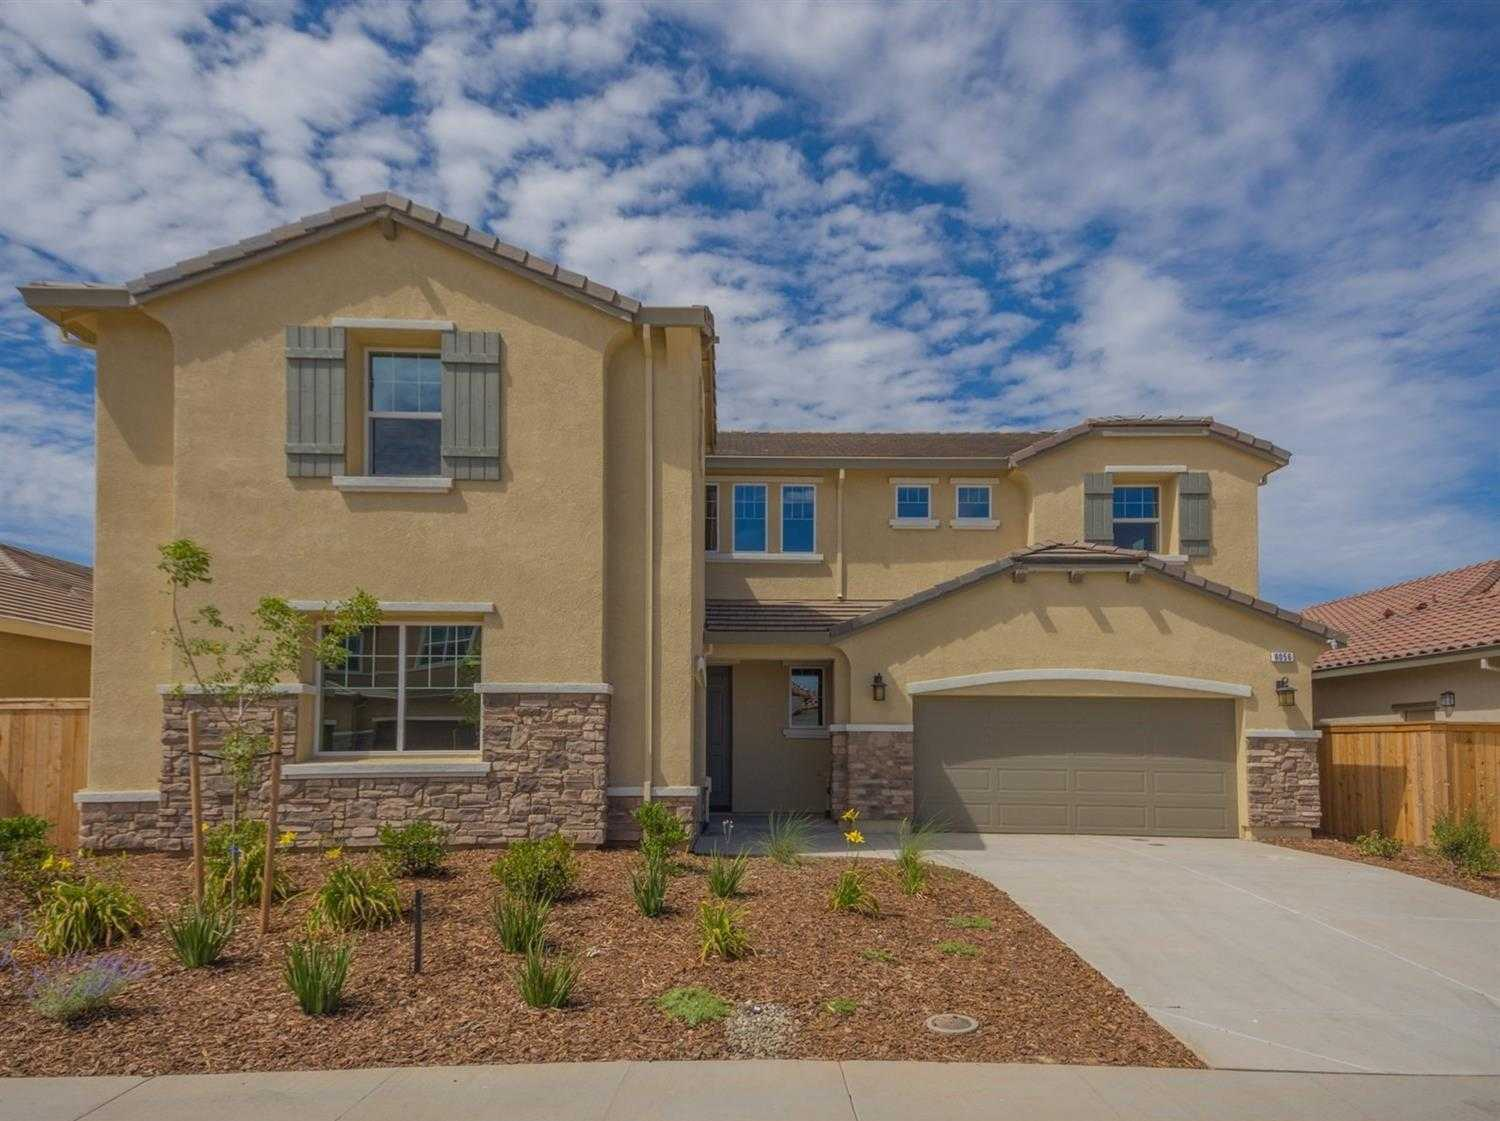 $665,916 - 5Br/5Ba -  for Sale in The Summit, Roseville